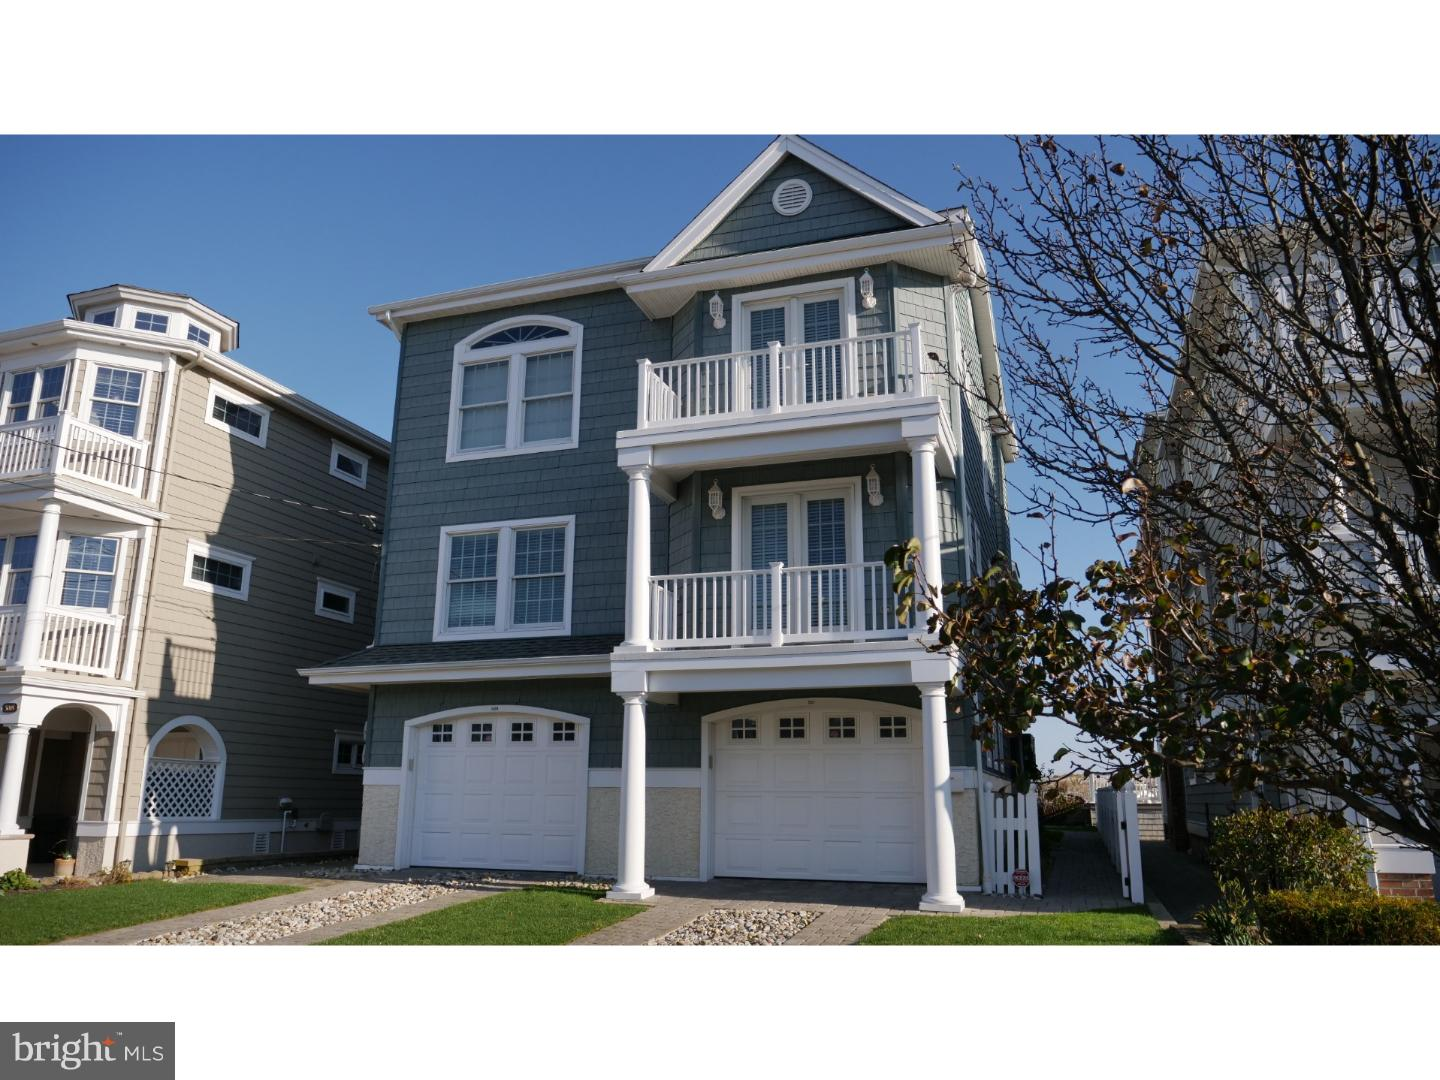 5009 CENTRAL AVENUE, OCEAN CITY, NJ 08226